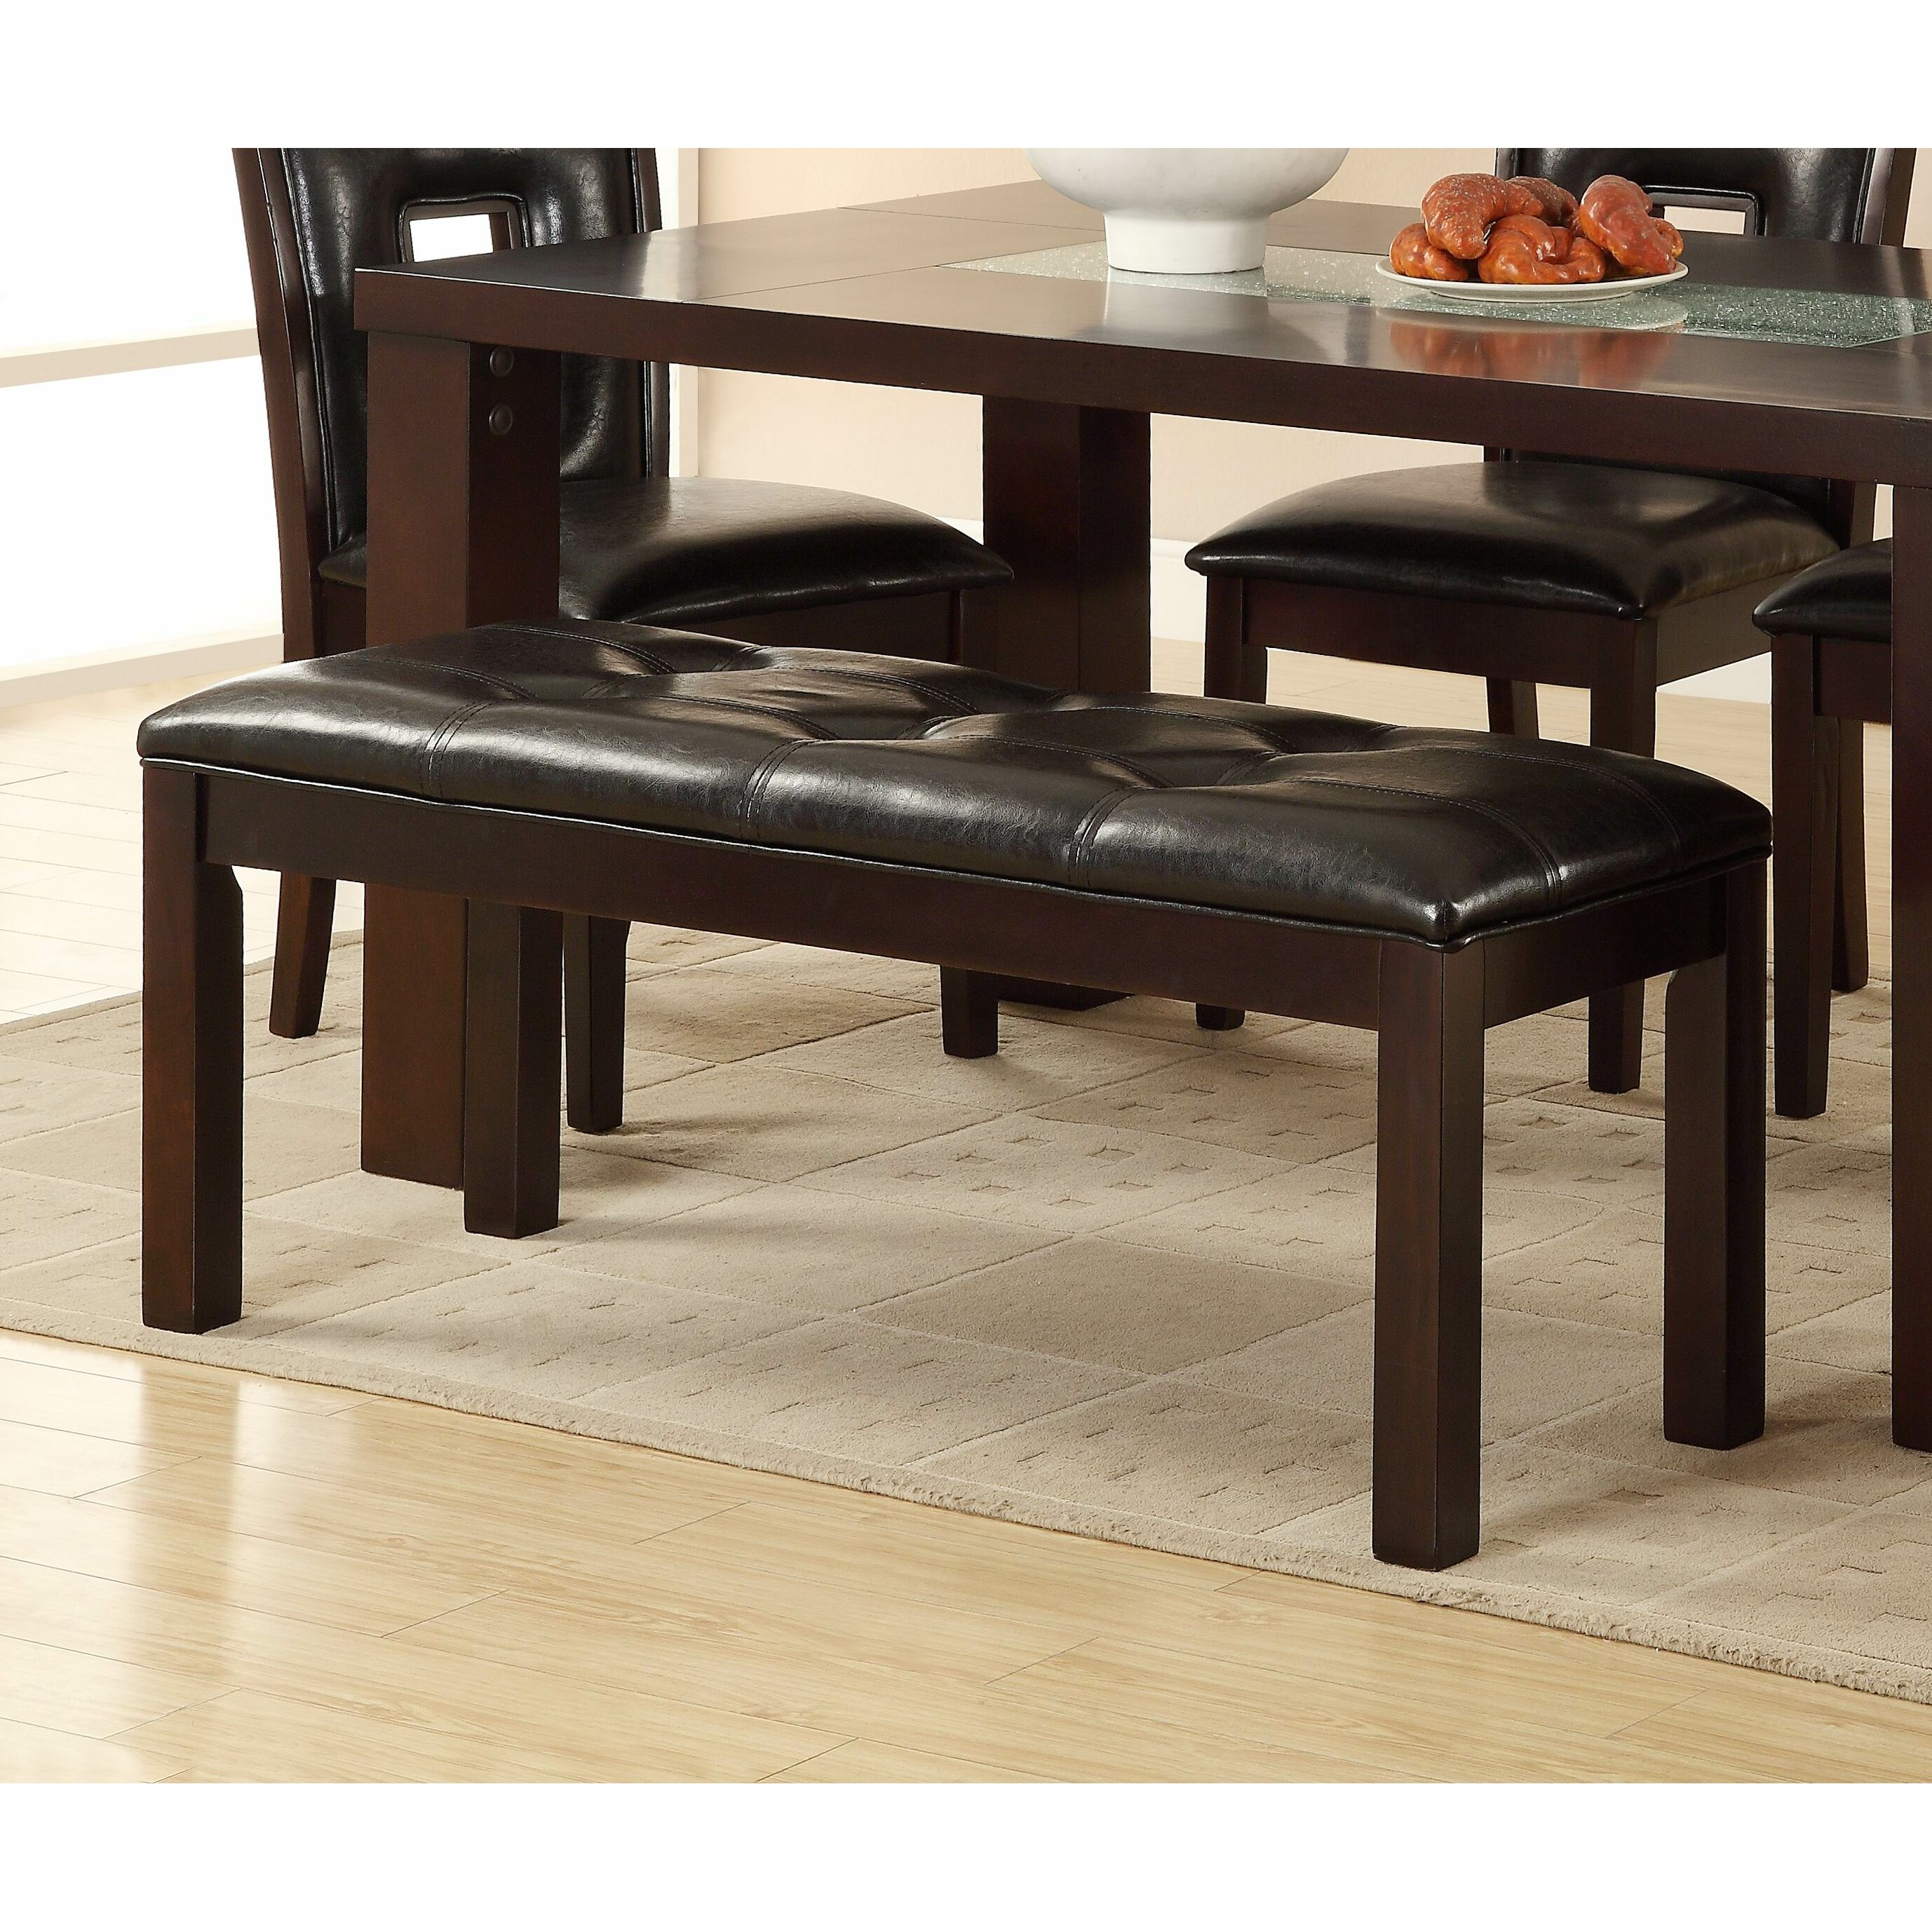 Woodhaven Hill Lee Upholstered Kitchen Bench & Reviews